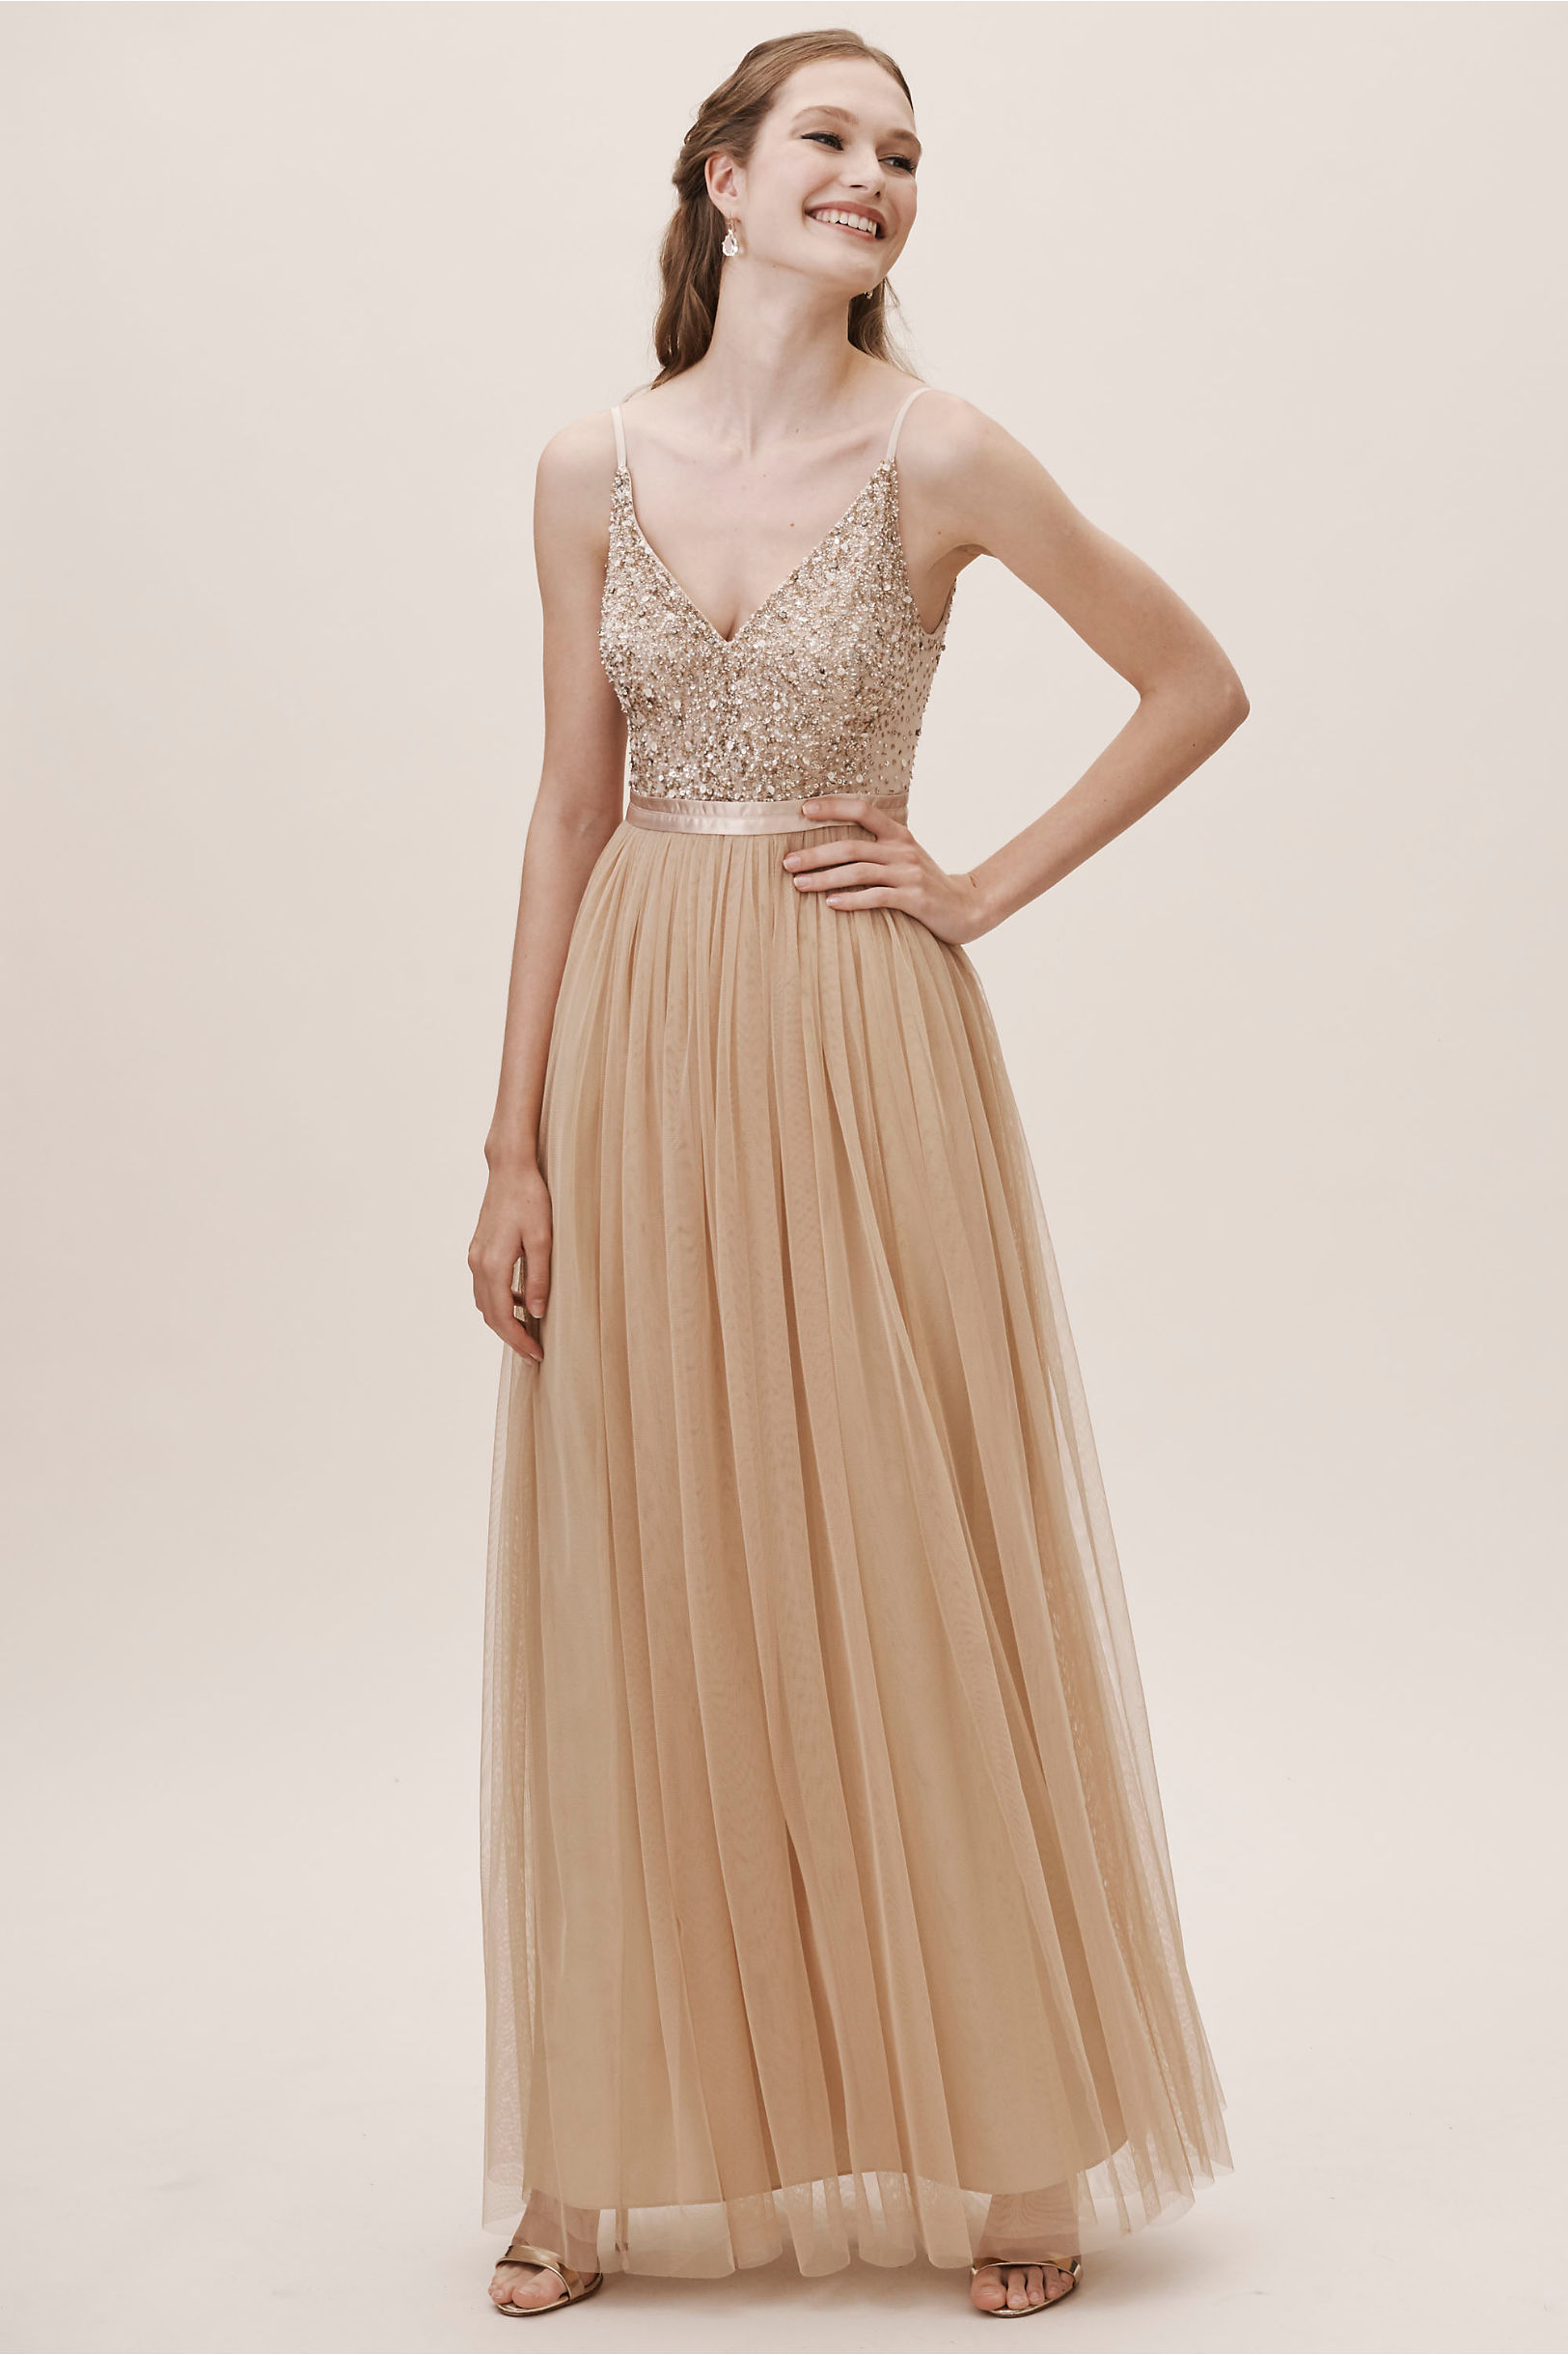 Bridesmaid dresses gowns bhldn avery dress avery dress ombrellifo Choice Image